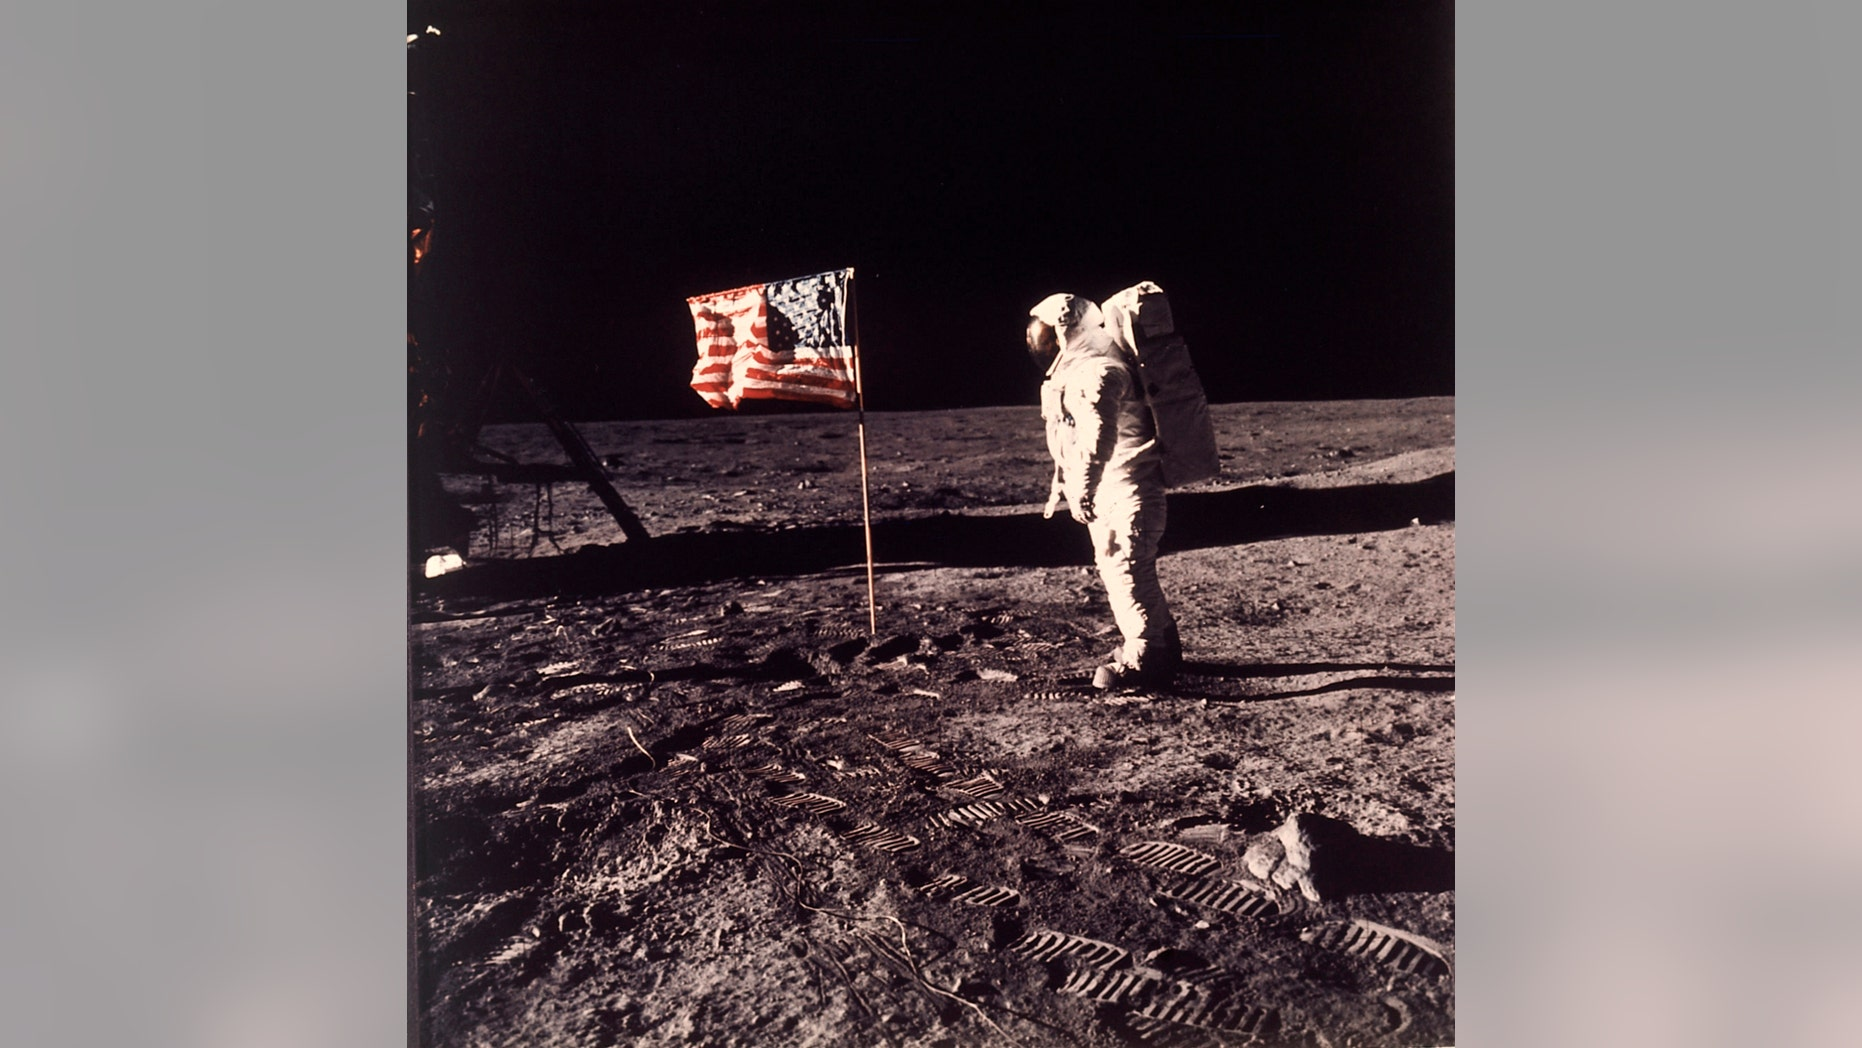 FILE - In this image provided by NASA, astronaut Buzz Aldrin poses for a photograph beside the U.S. flag deployed on the moon during the Apollo 11 mission on July 20, 1969. A new poll shows most Americans prefer focusing on potential asteroid impacts over a return to the moon. The survey by The Associated Press and the NORC Center for Public Affairs Research was released Thursday, June 20, one month before the 50th anniversary of Neil Armstrong and Aldrin's momentous lunar landing. (Neil A. Armstrong/NASA via AP)